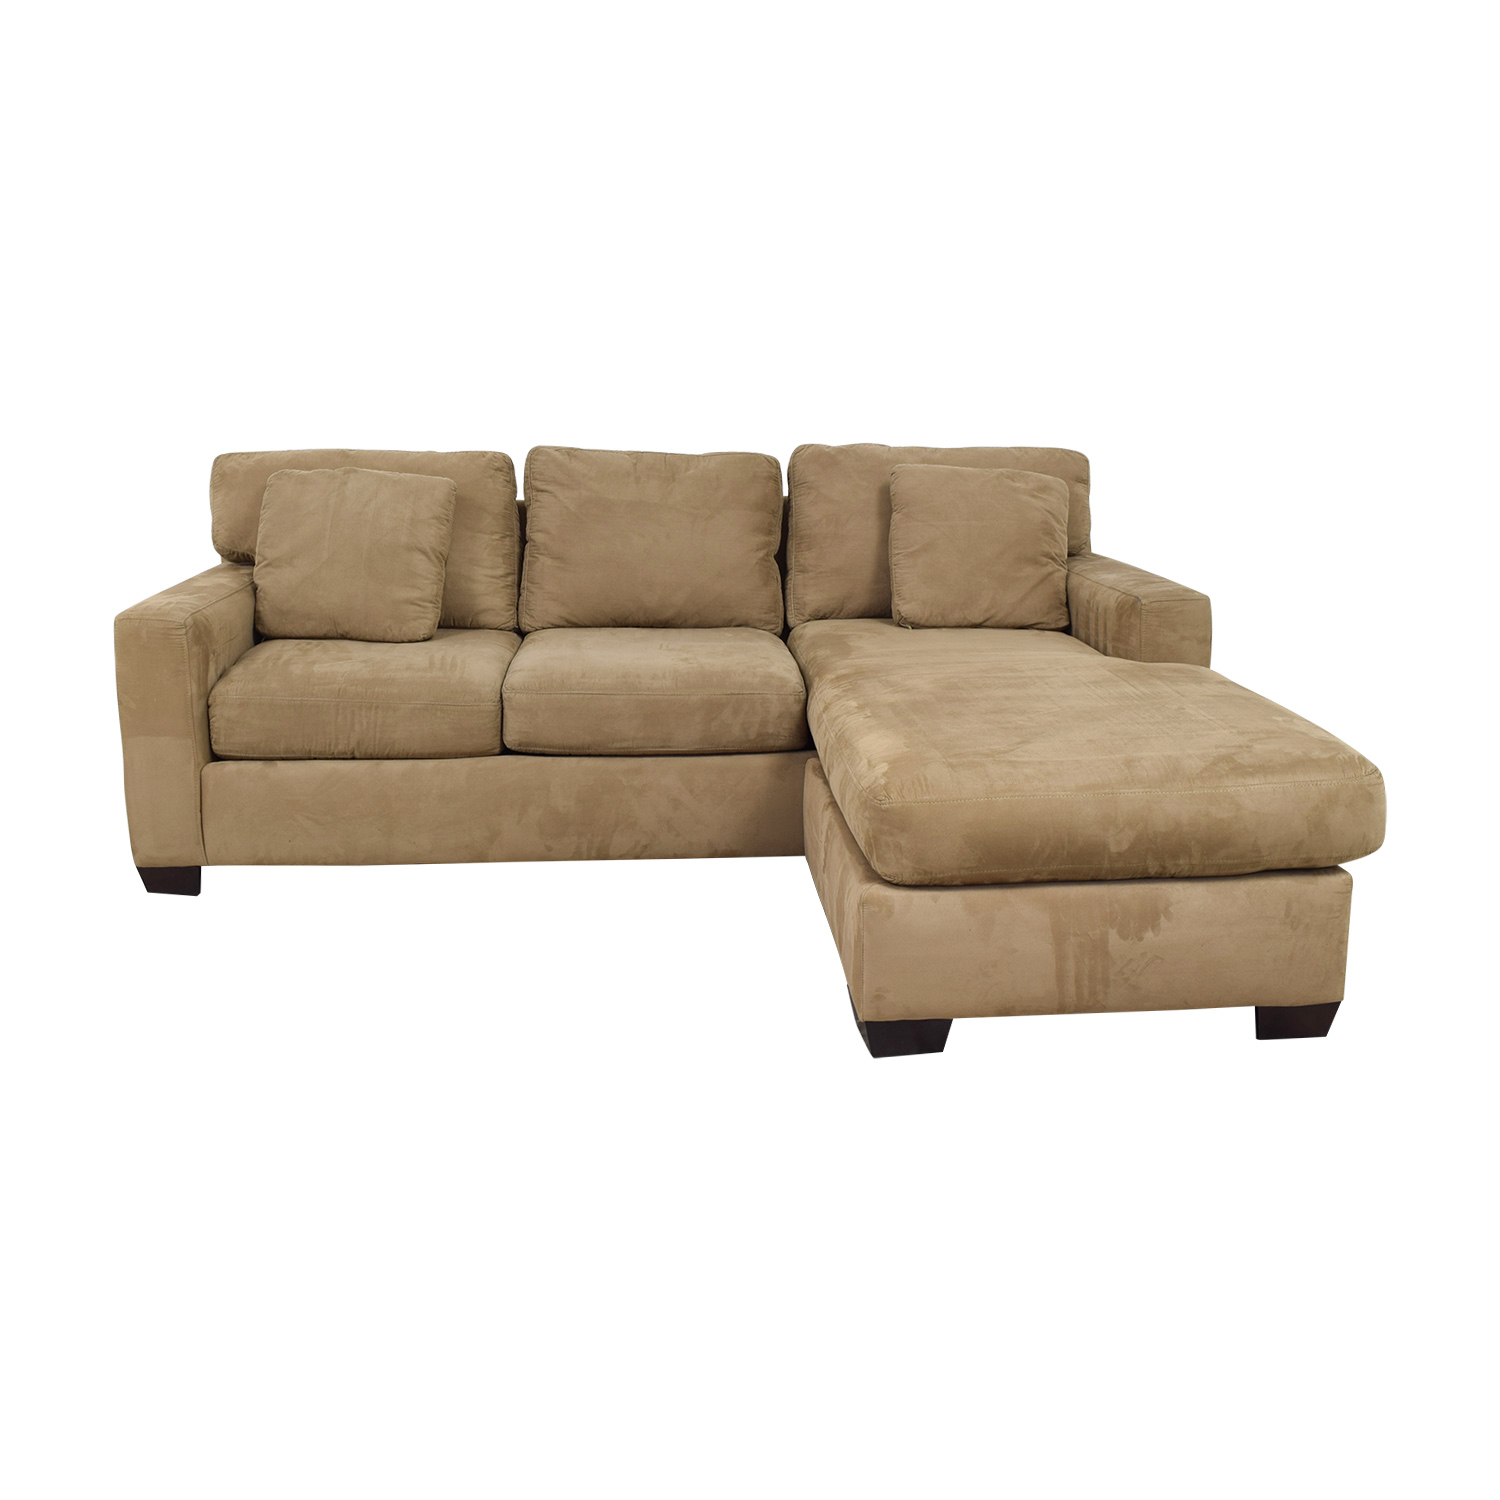 buy Better By Design Beige Chaise Sectional Better By Design Sofas